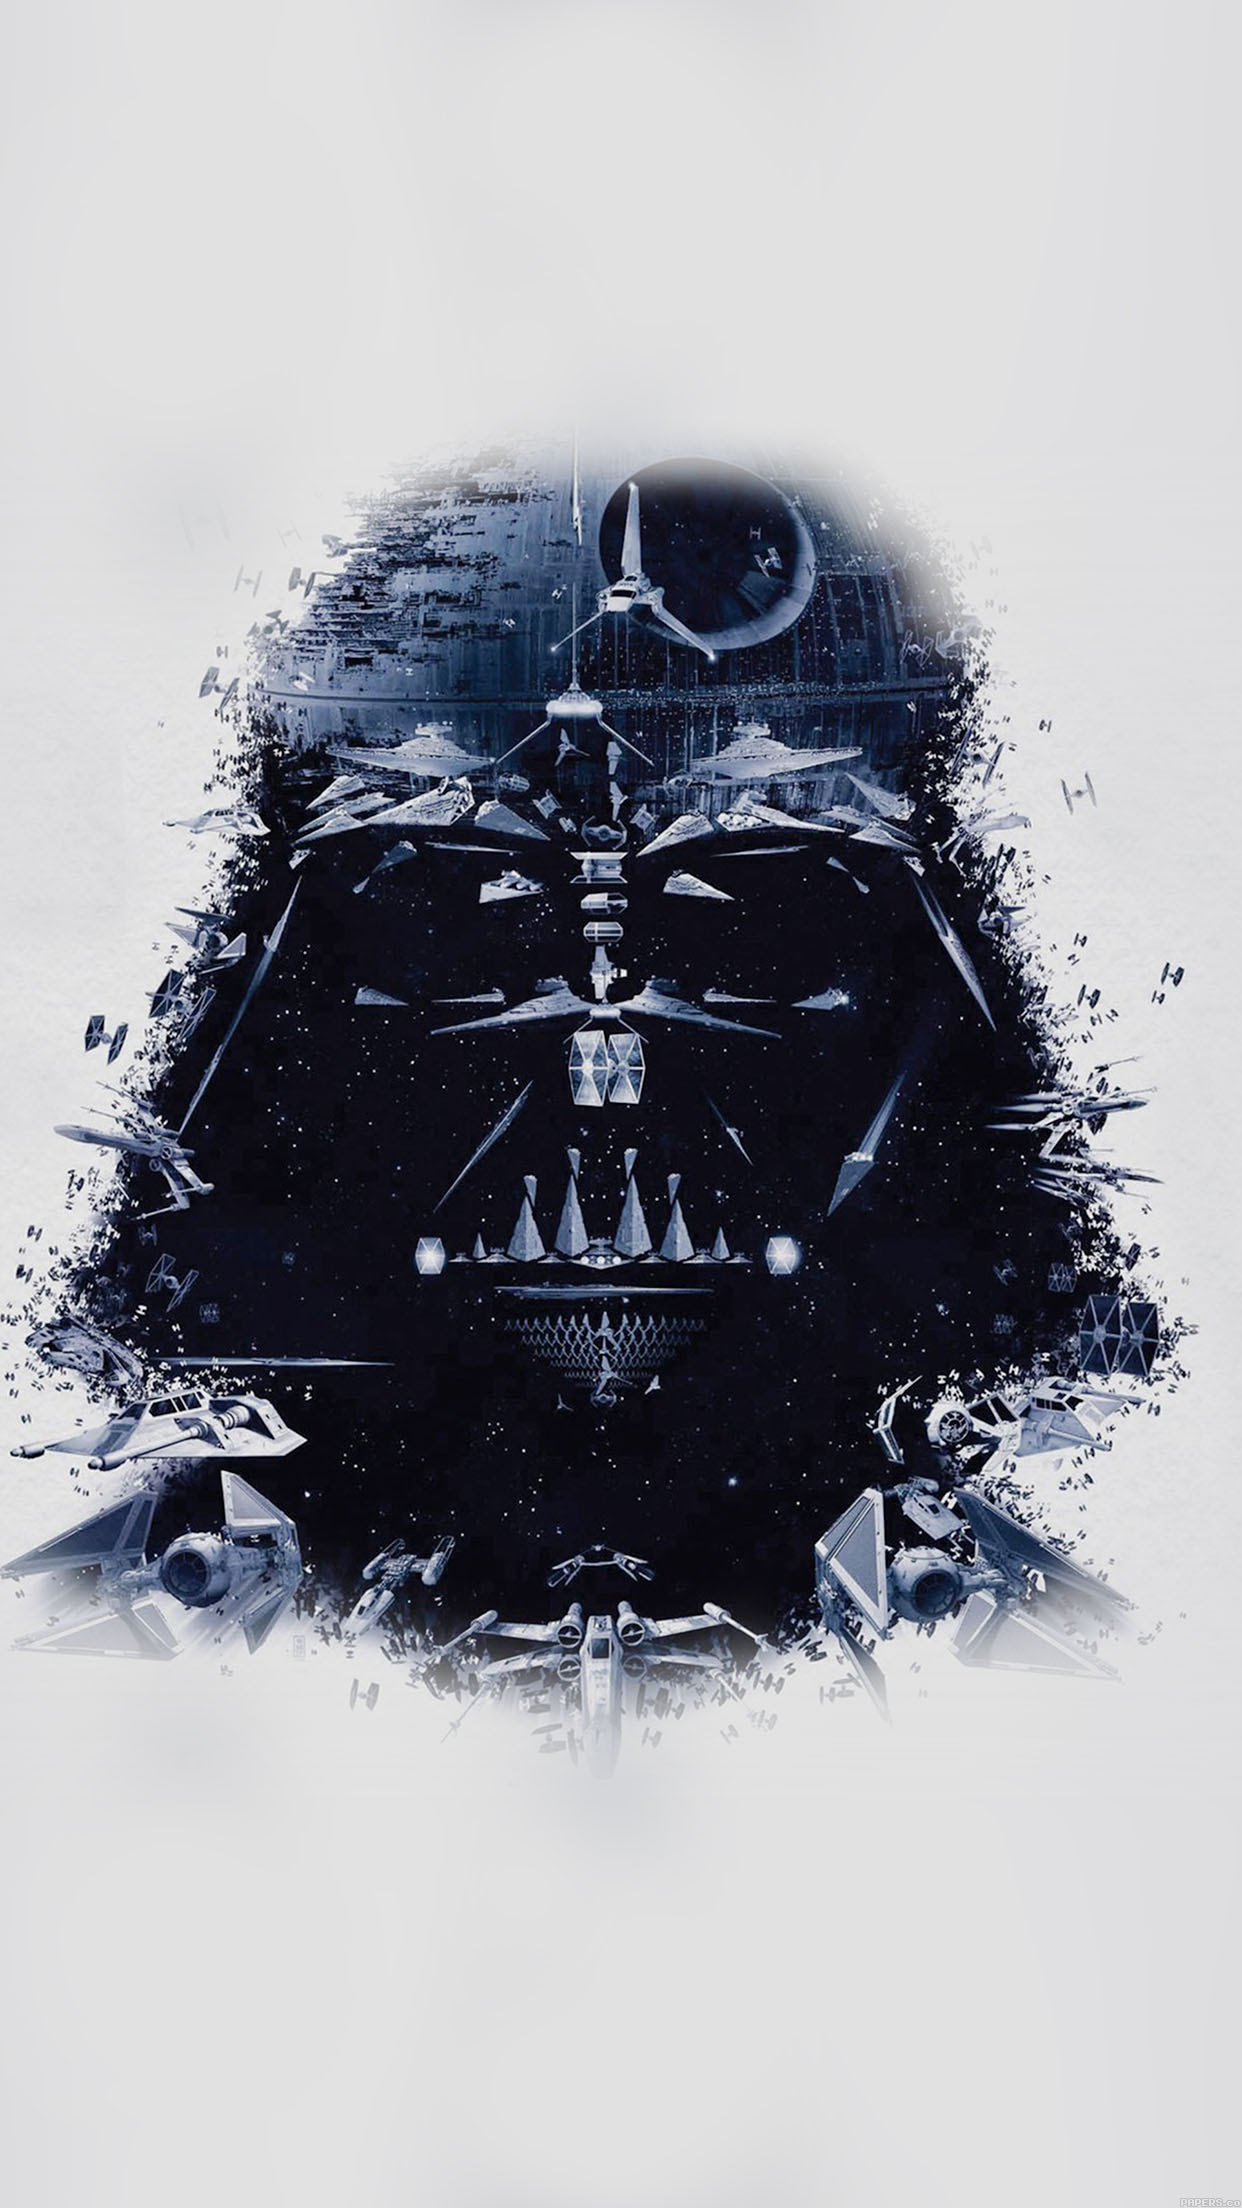 Star Wars Darth Vader Wallpaper For Iphone X 8 7 6 Free